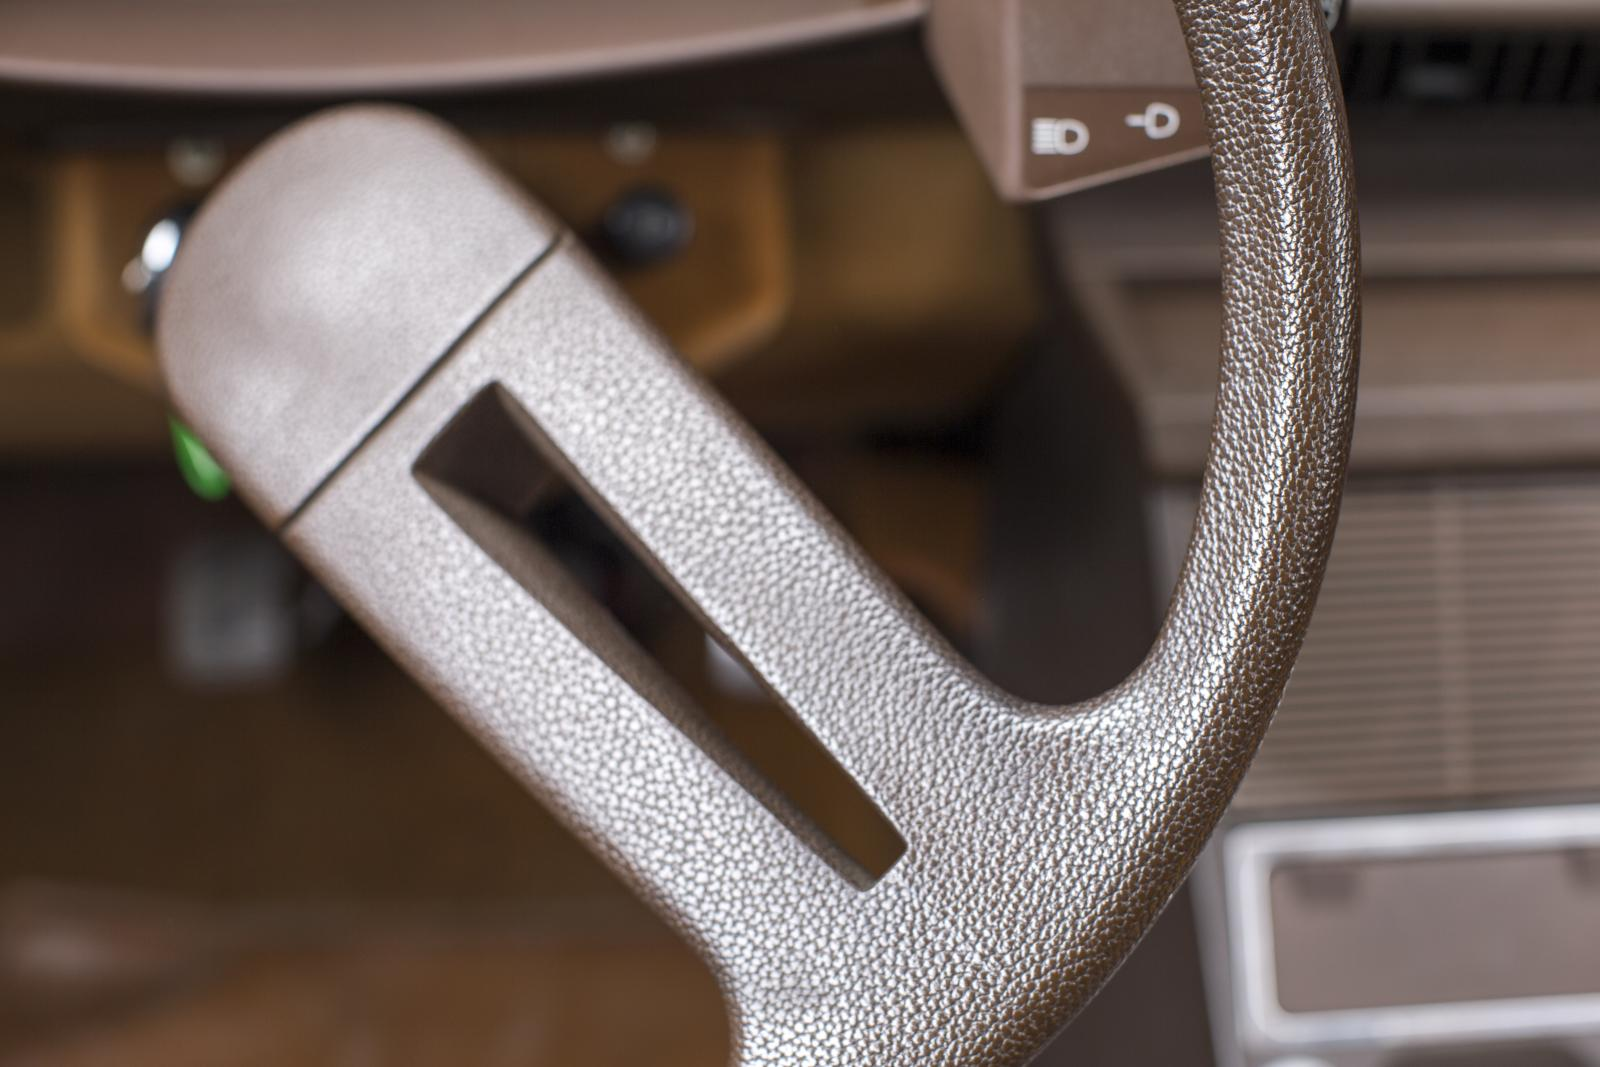 CX steering wheel detail